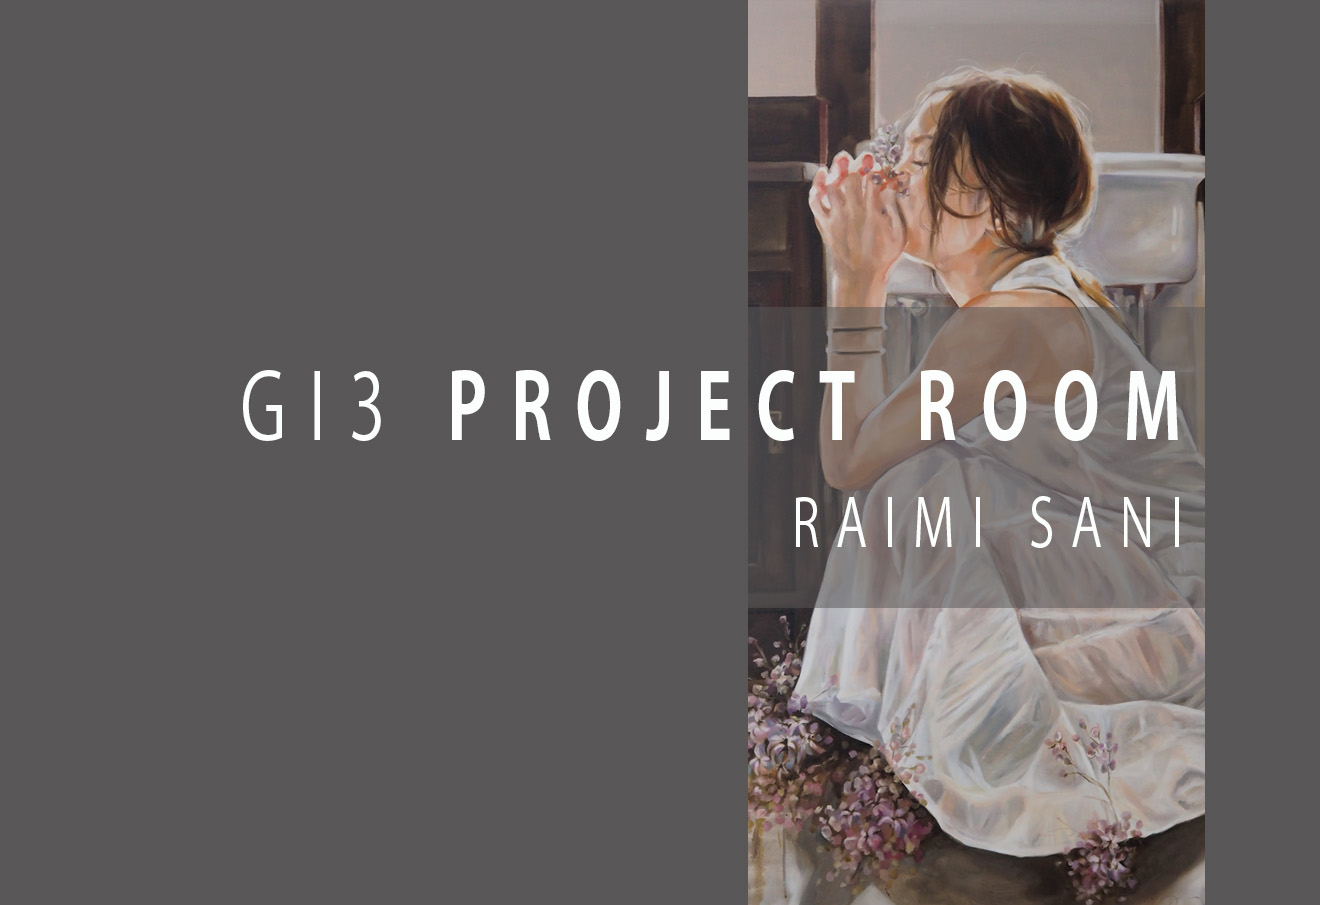 G13 Project Room